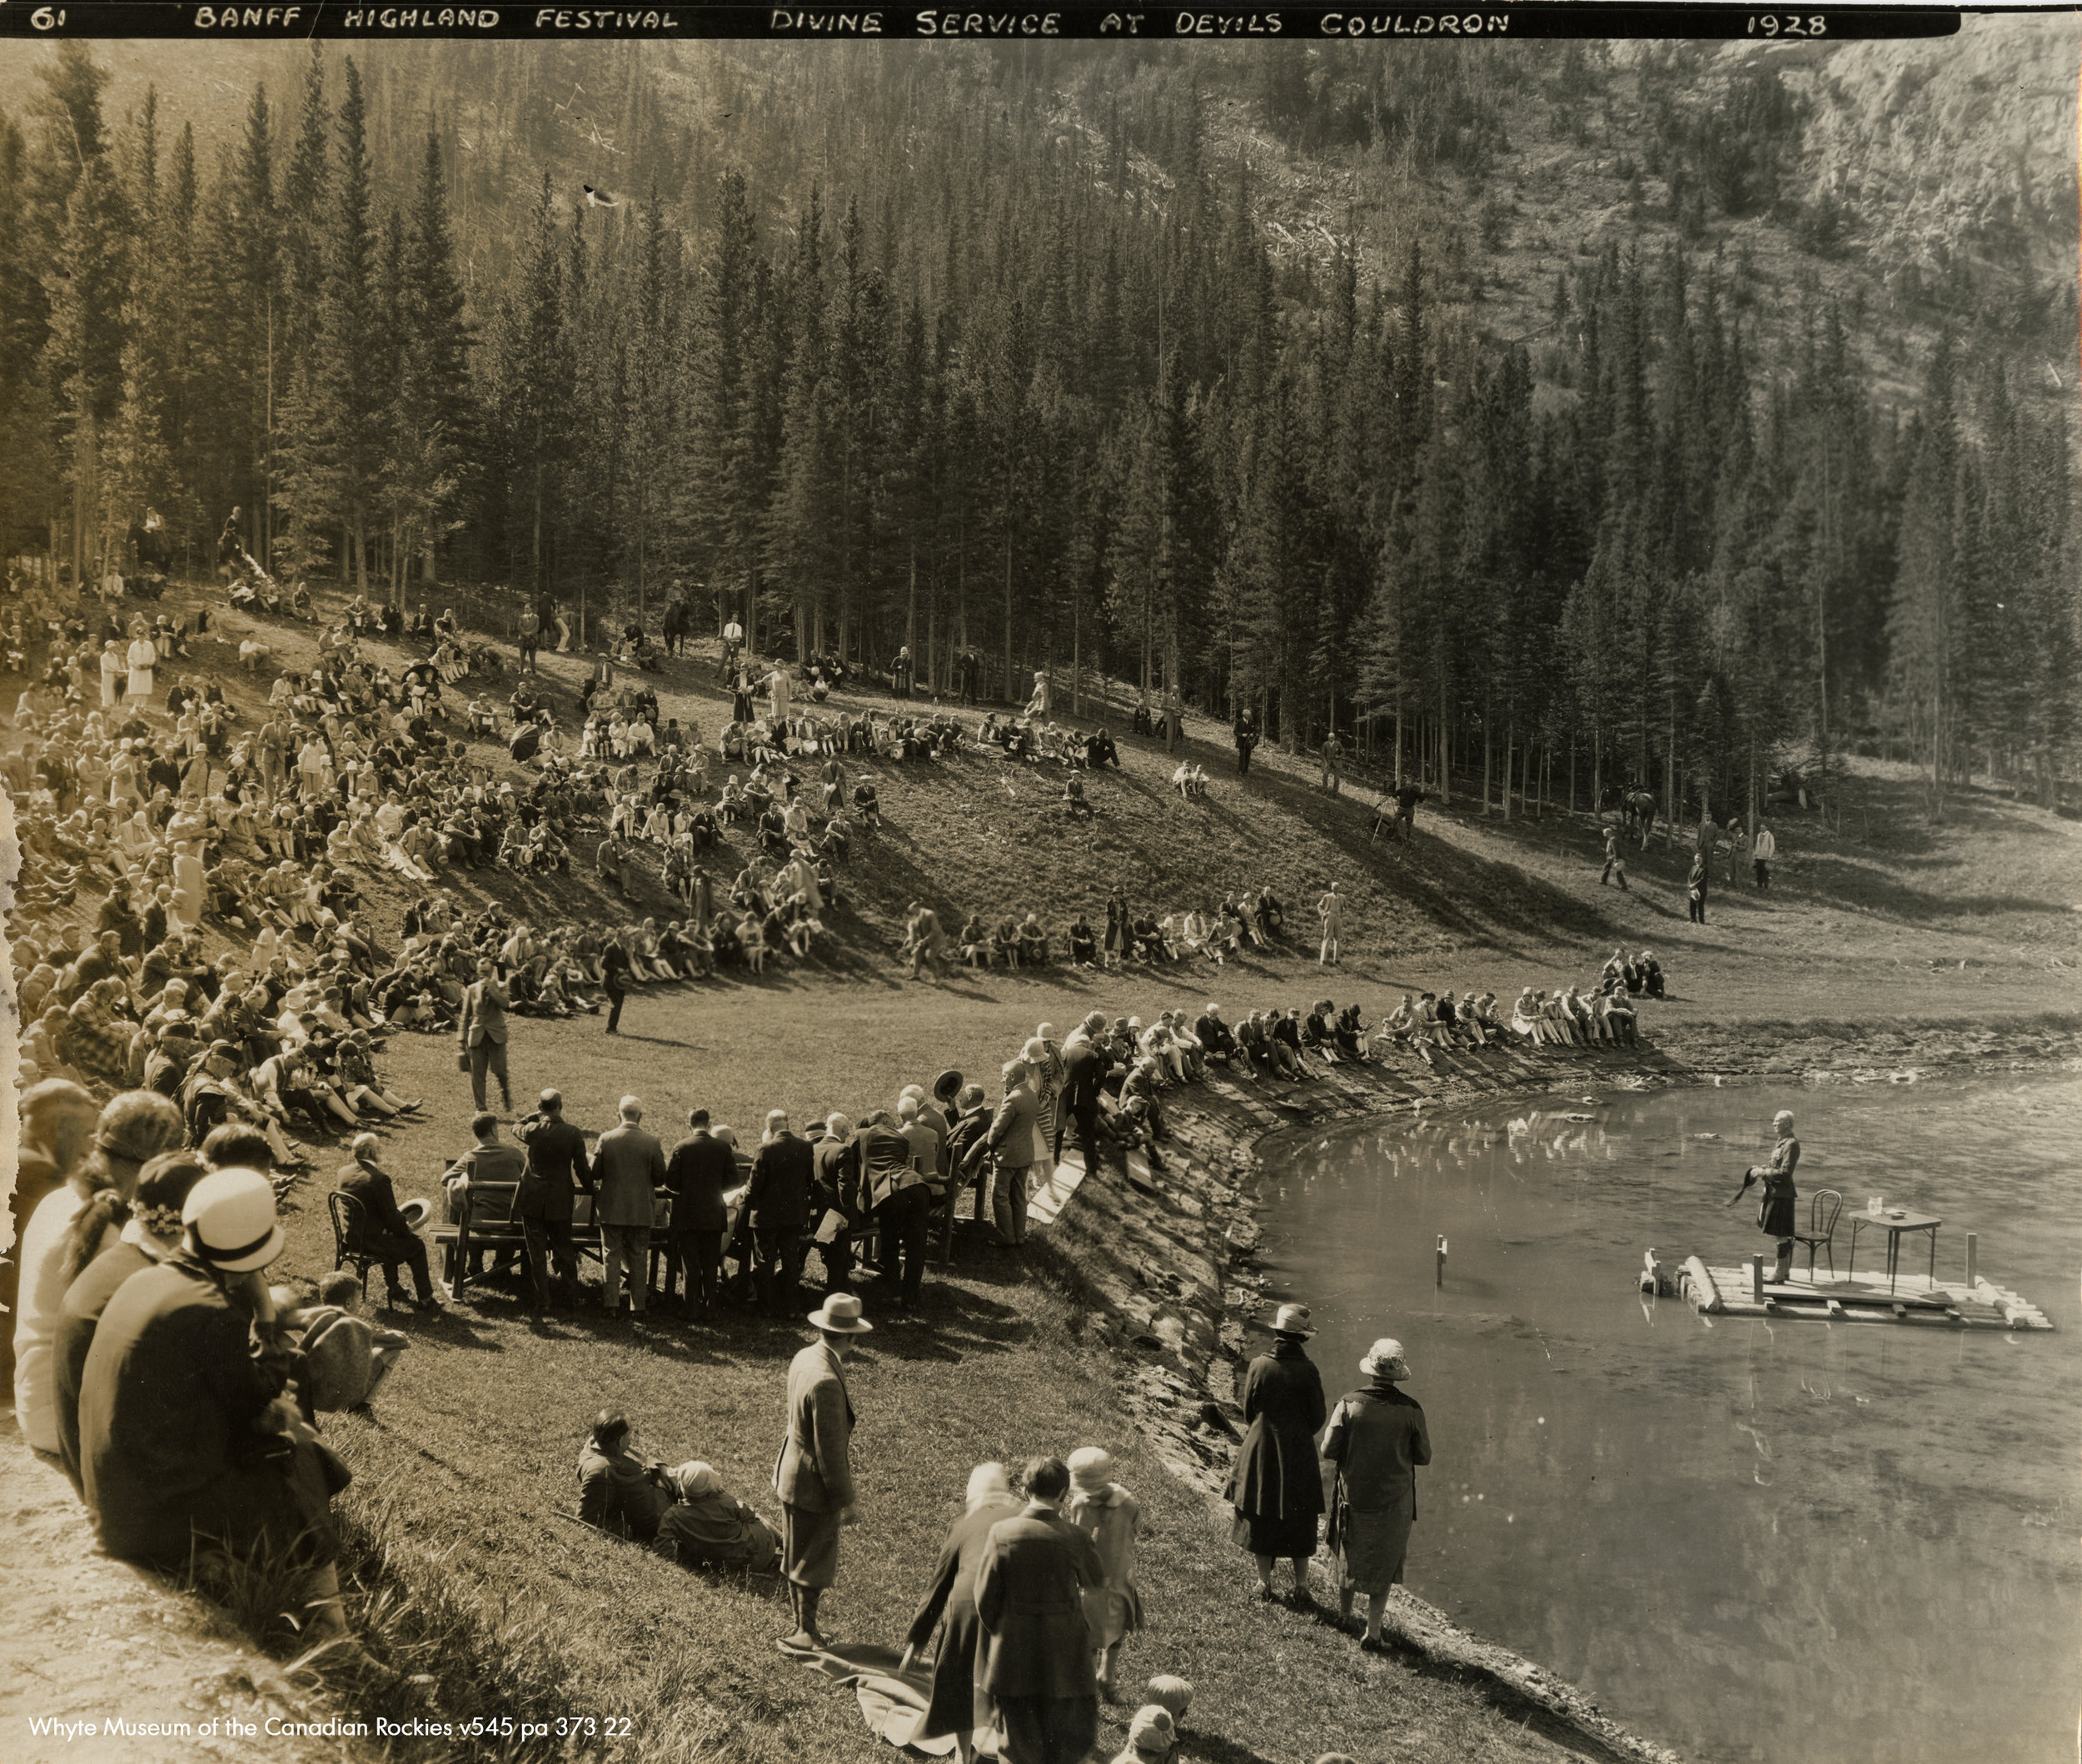 The covenanter services, Banff Highland Gathering conducted by Reverend Ralph Connor in September of 1928 in the Devil's Cauldron. No bunkers present.